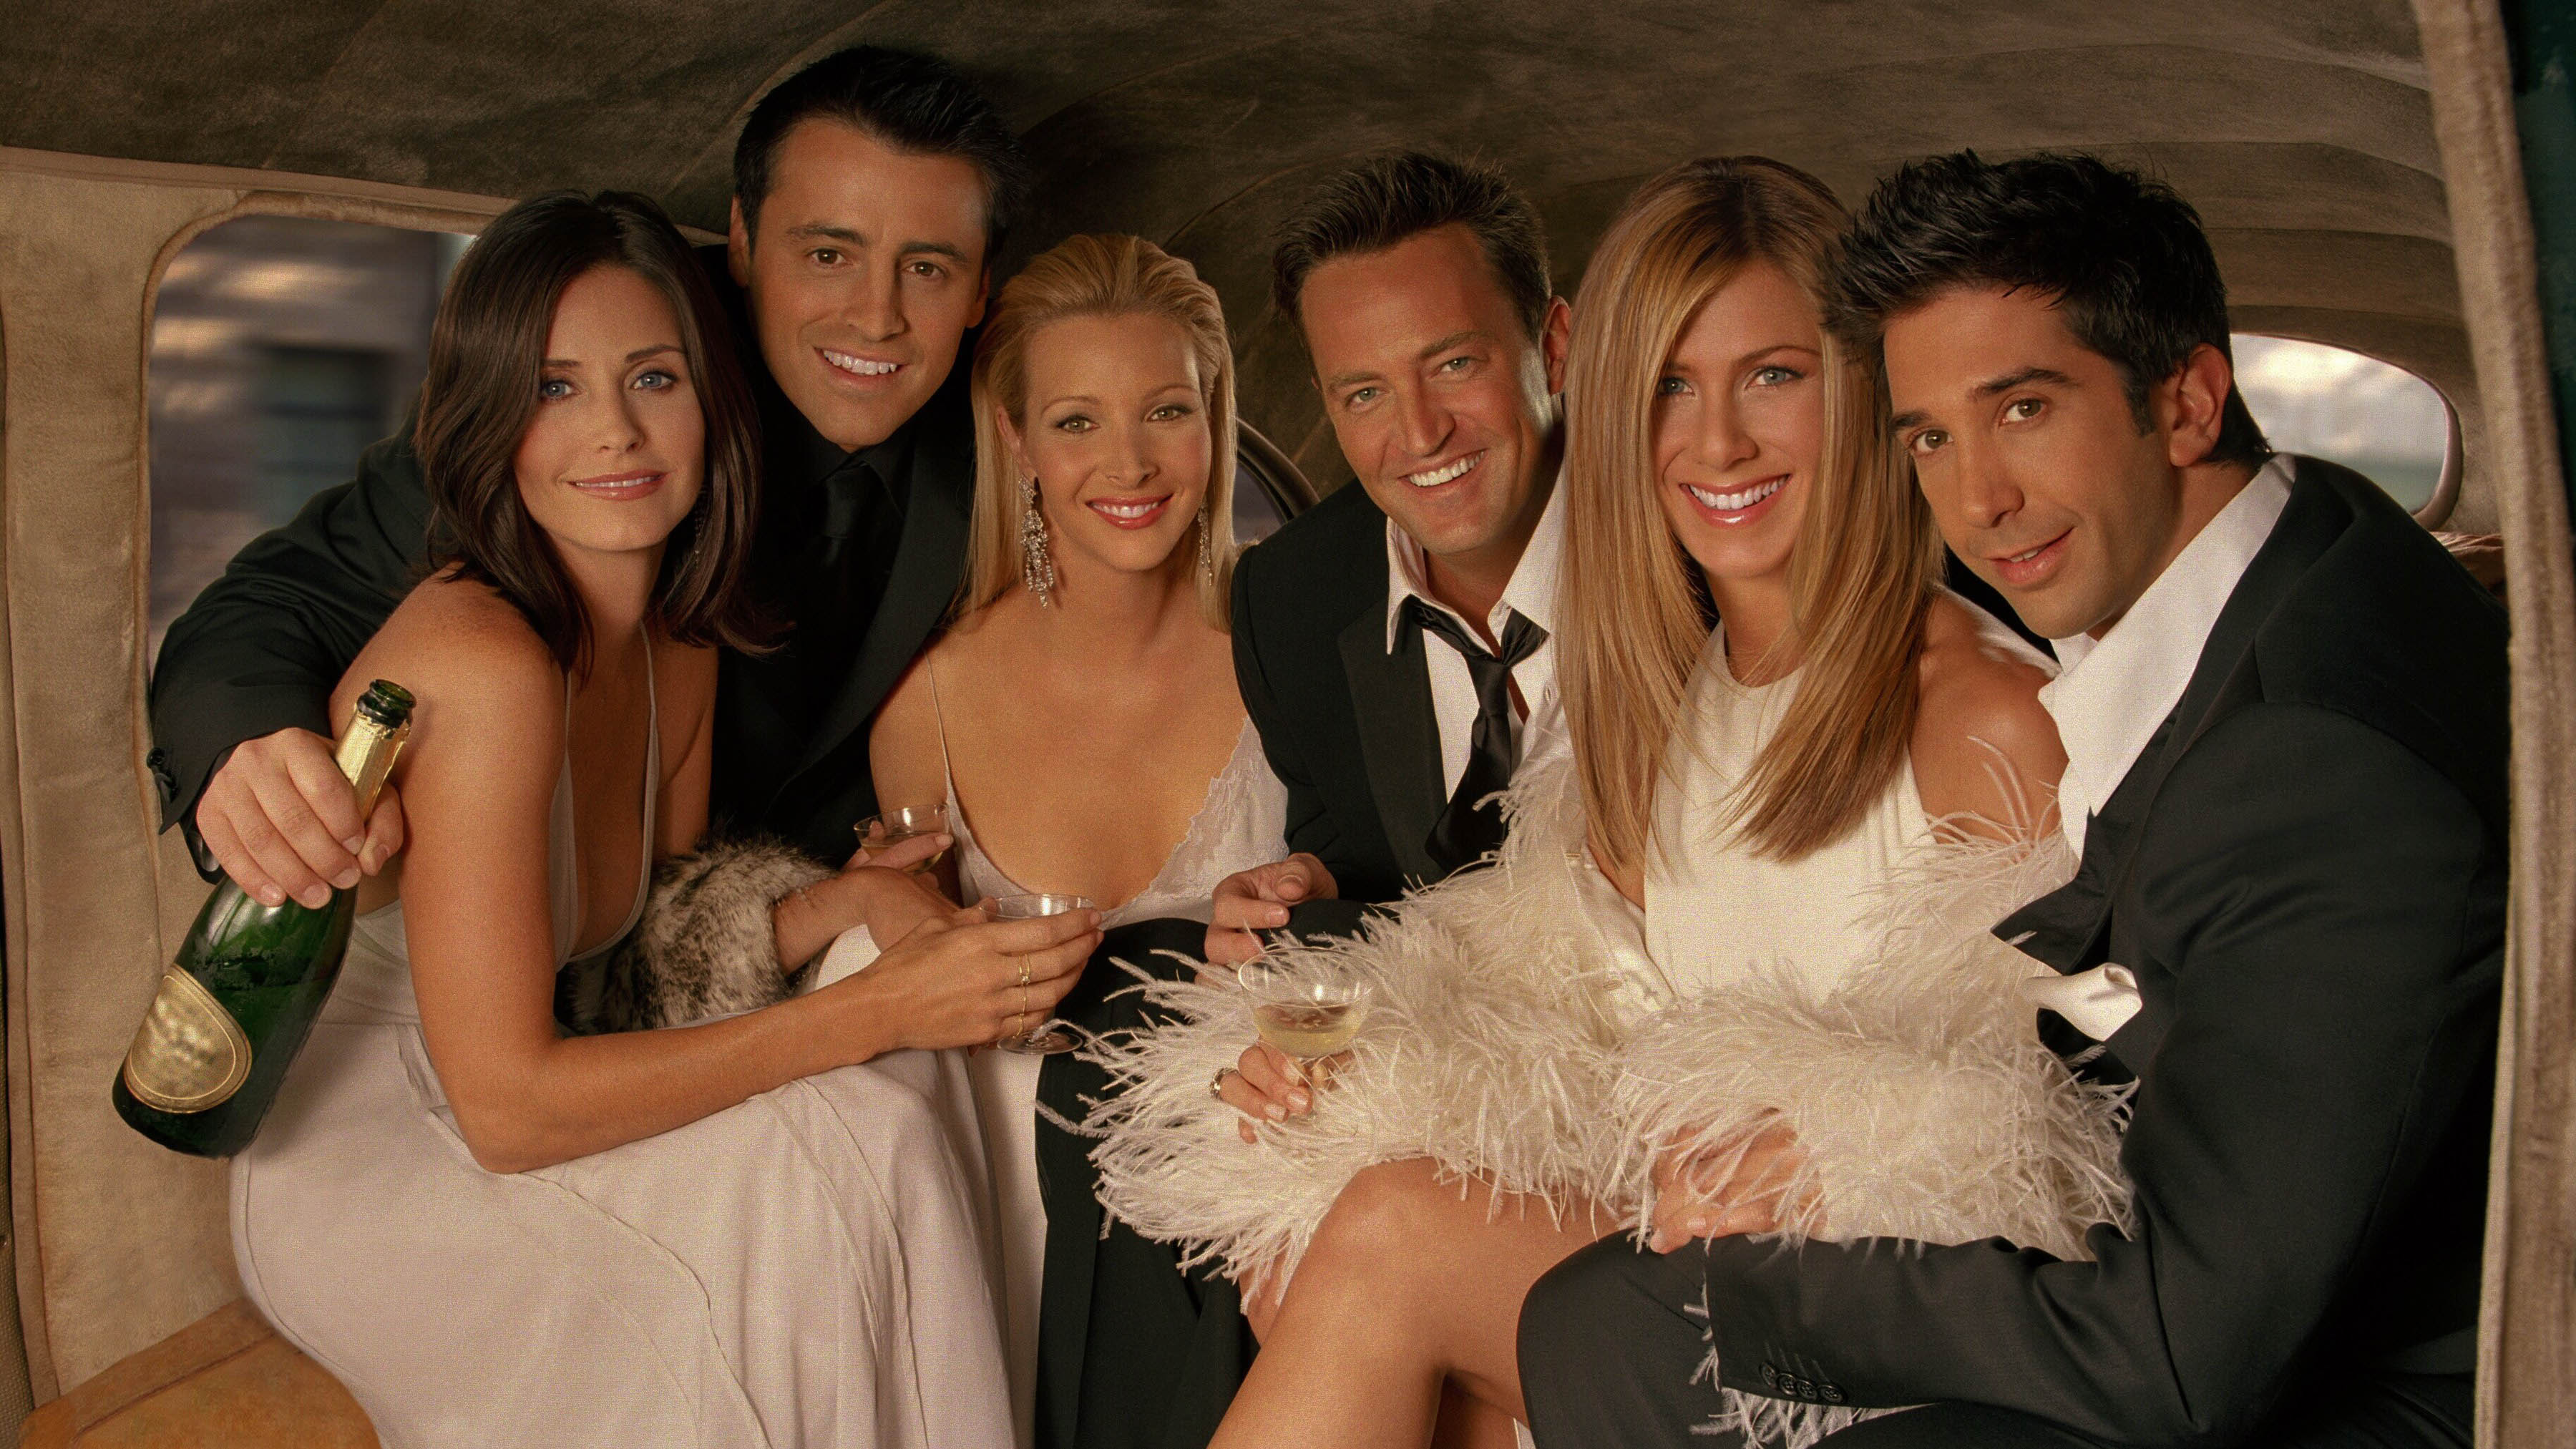 Tv Show Friends Some Beautiful Hd Wallpapers In High